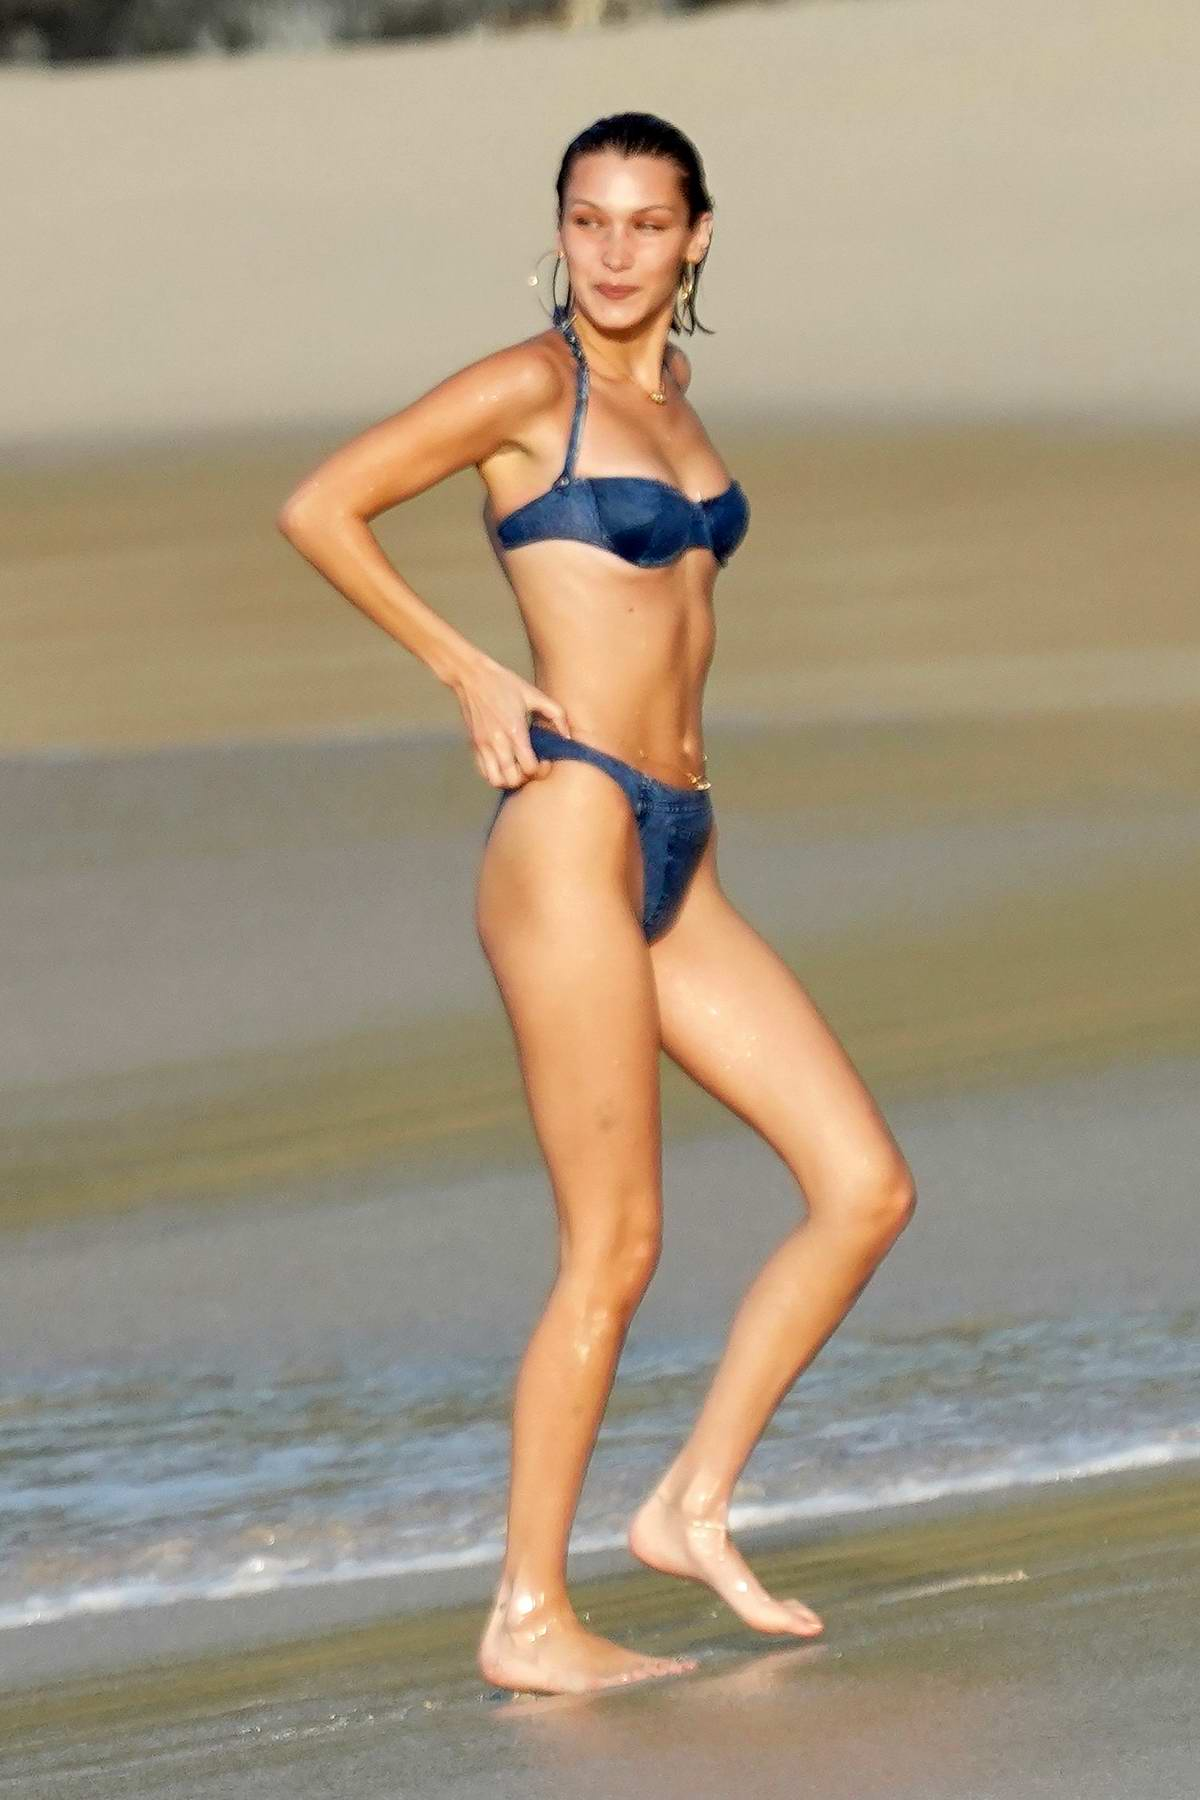 Bella Hadid hits the beach in a blue denim bikini as she wraps up the year in St Barts, France